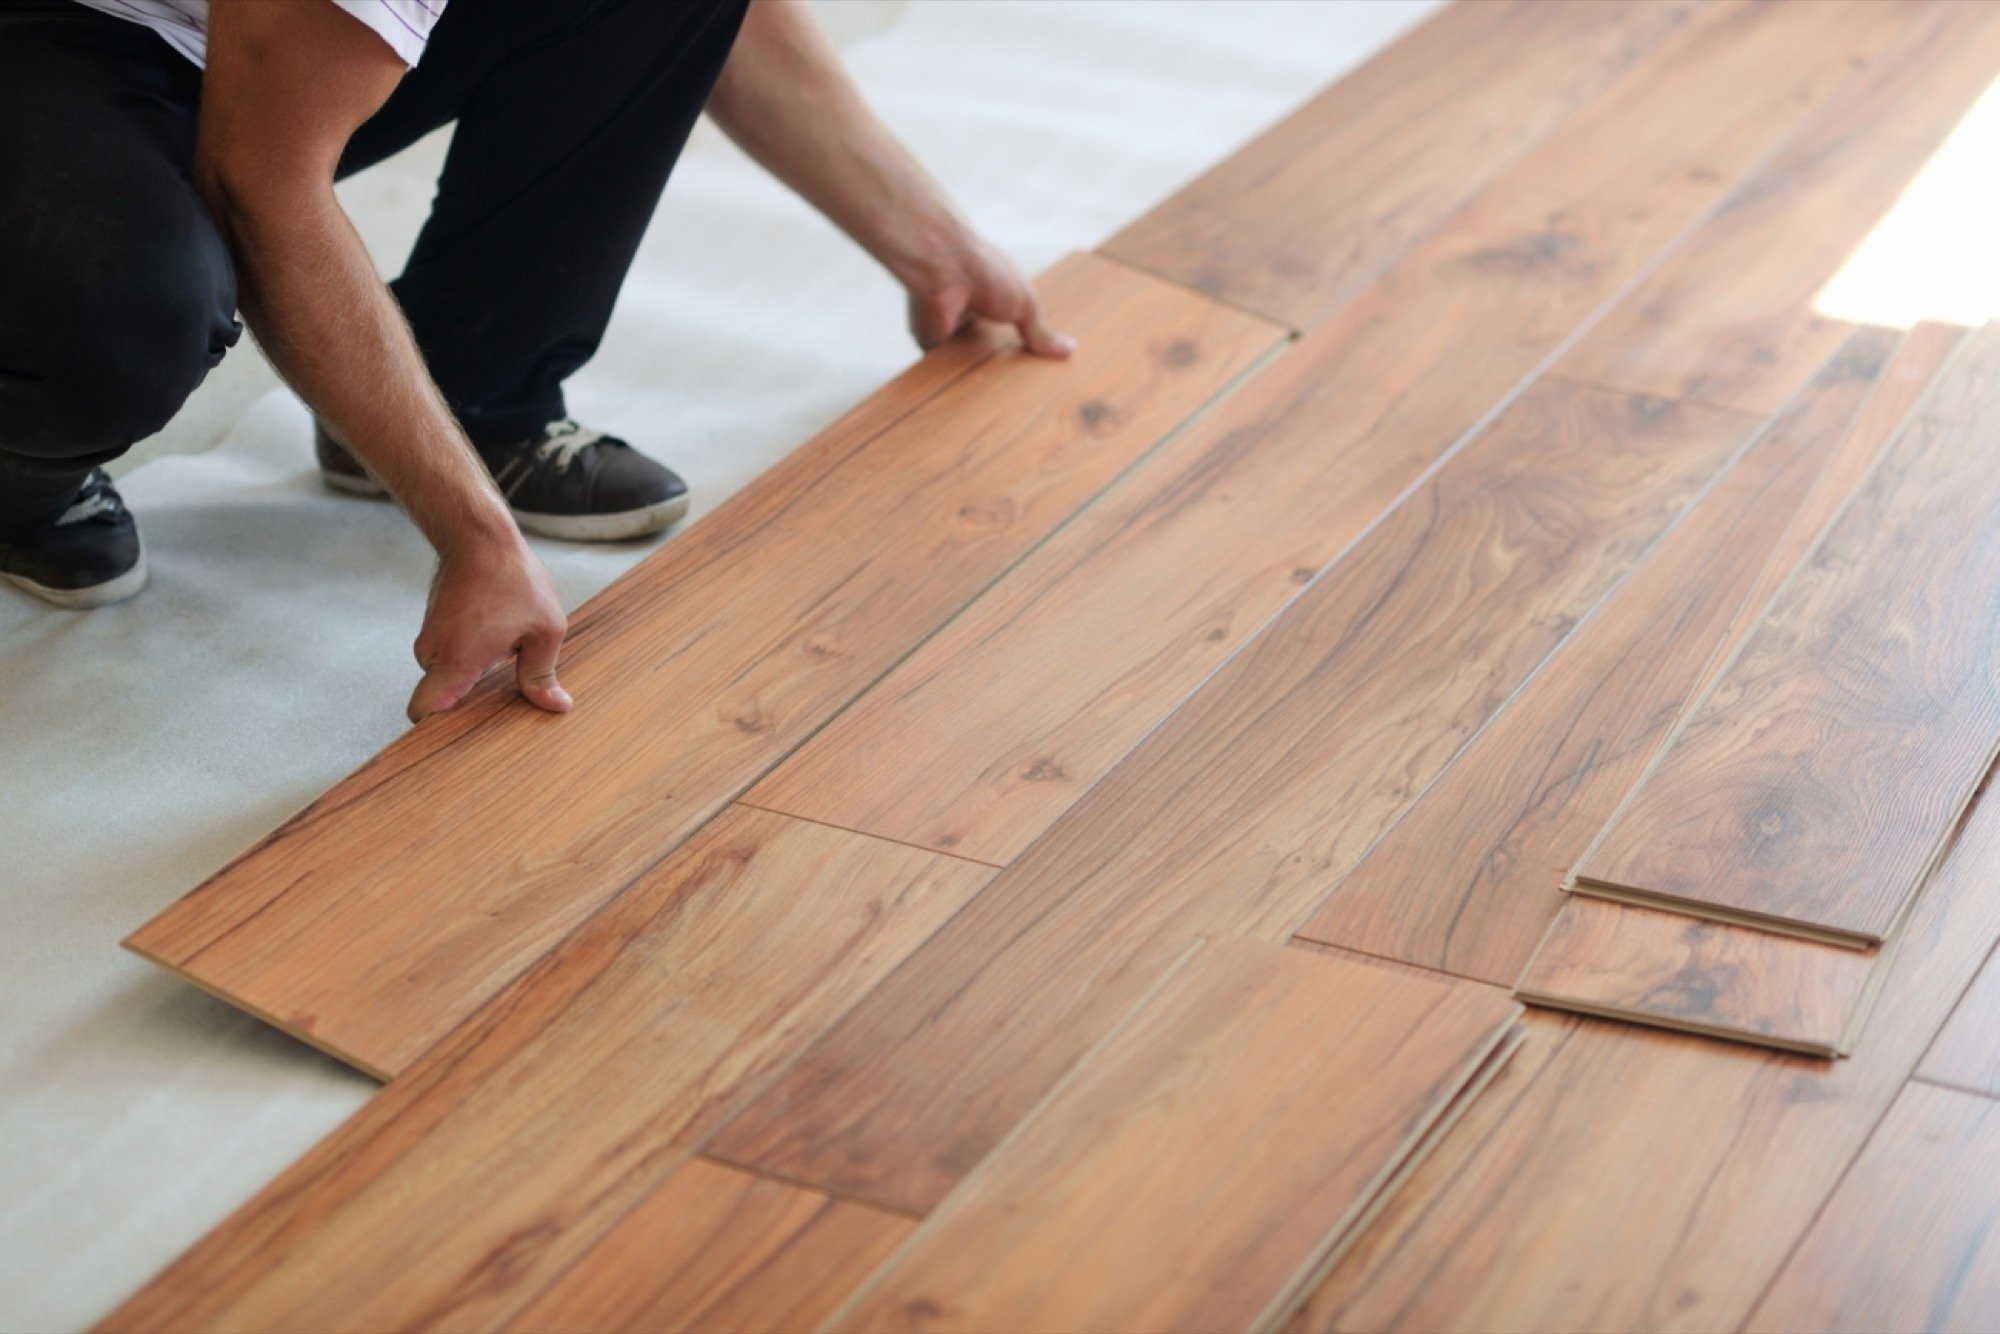 How to choose the right hardwood floors for your place